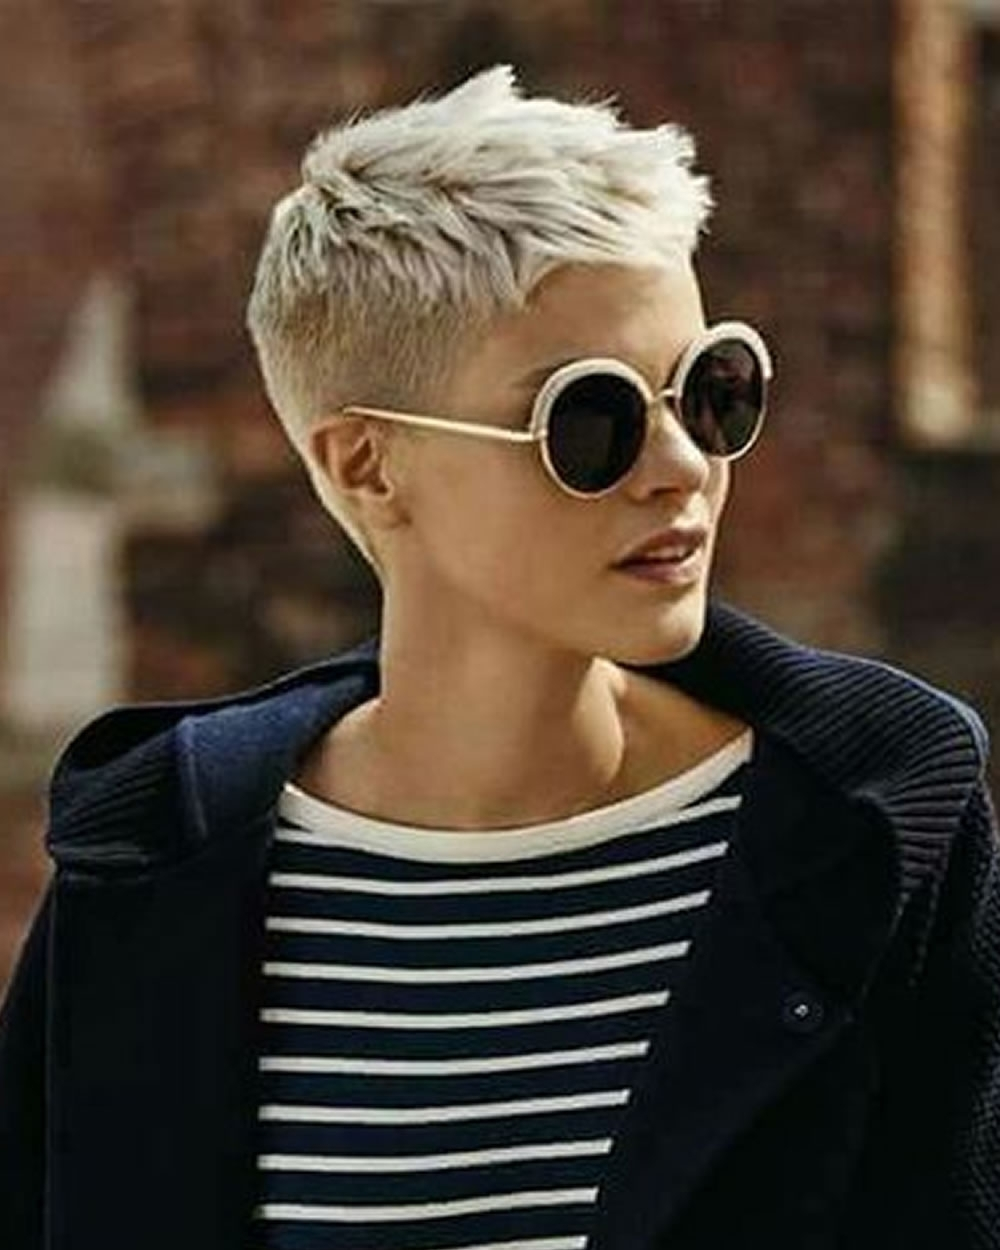 Super Very Short Pixie Haircuts & Hair Colors For 2018 2019 With Most Recent Pixie Hairstyles With Glasses (View 11 of 15)